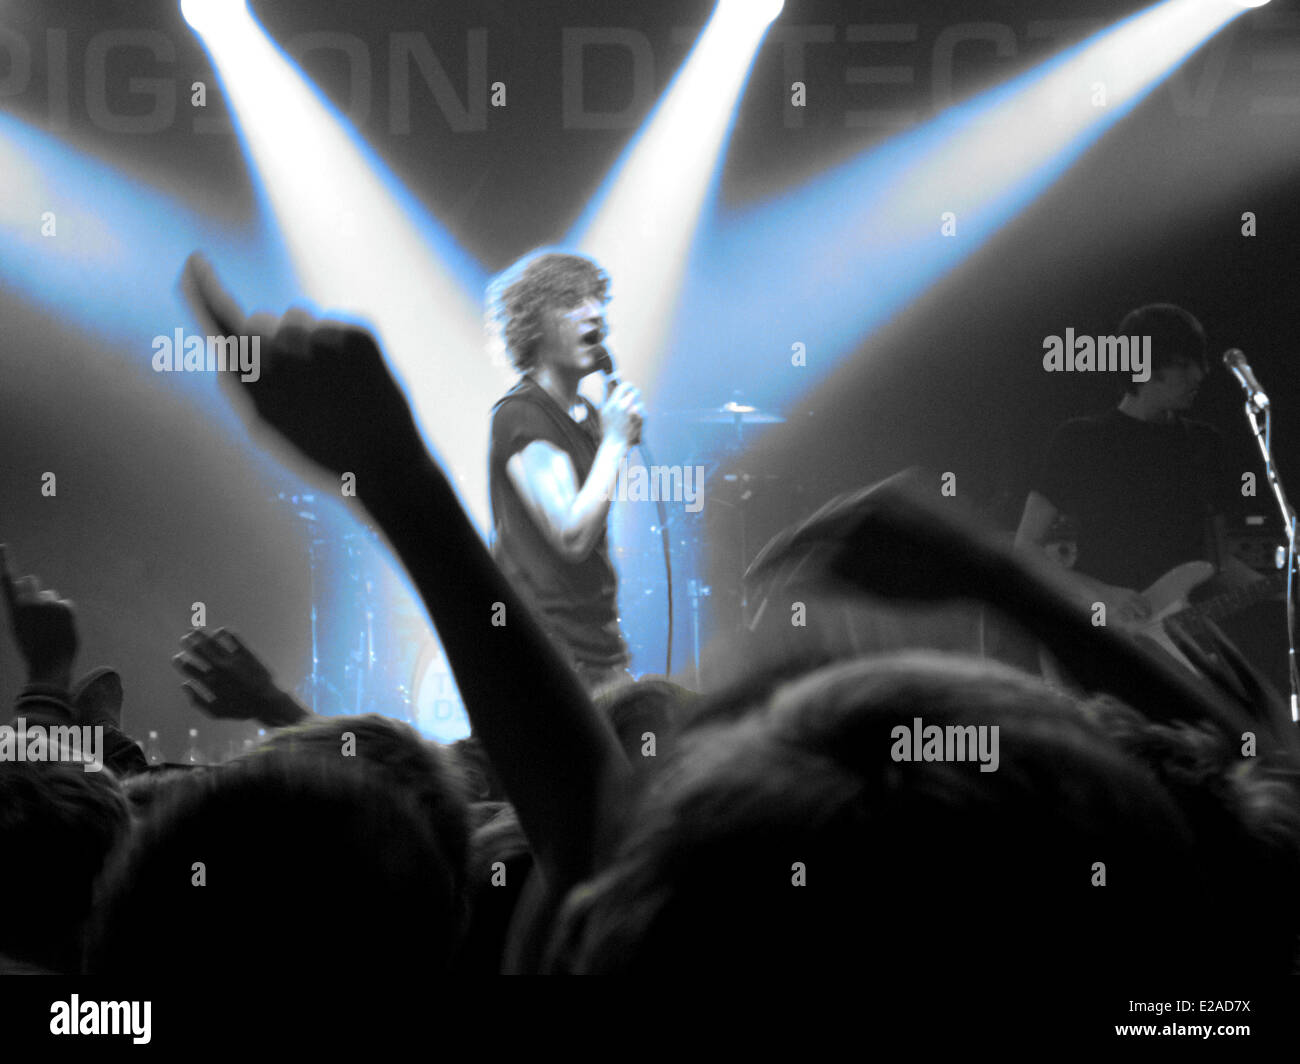 United Kingdom, Yorkshire, Leeds, night rock show at Leeds Academy, The Pigeon Detective, local rock band - Stock Image